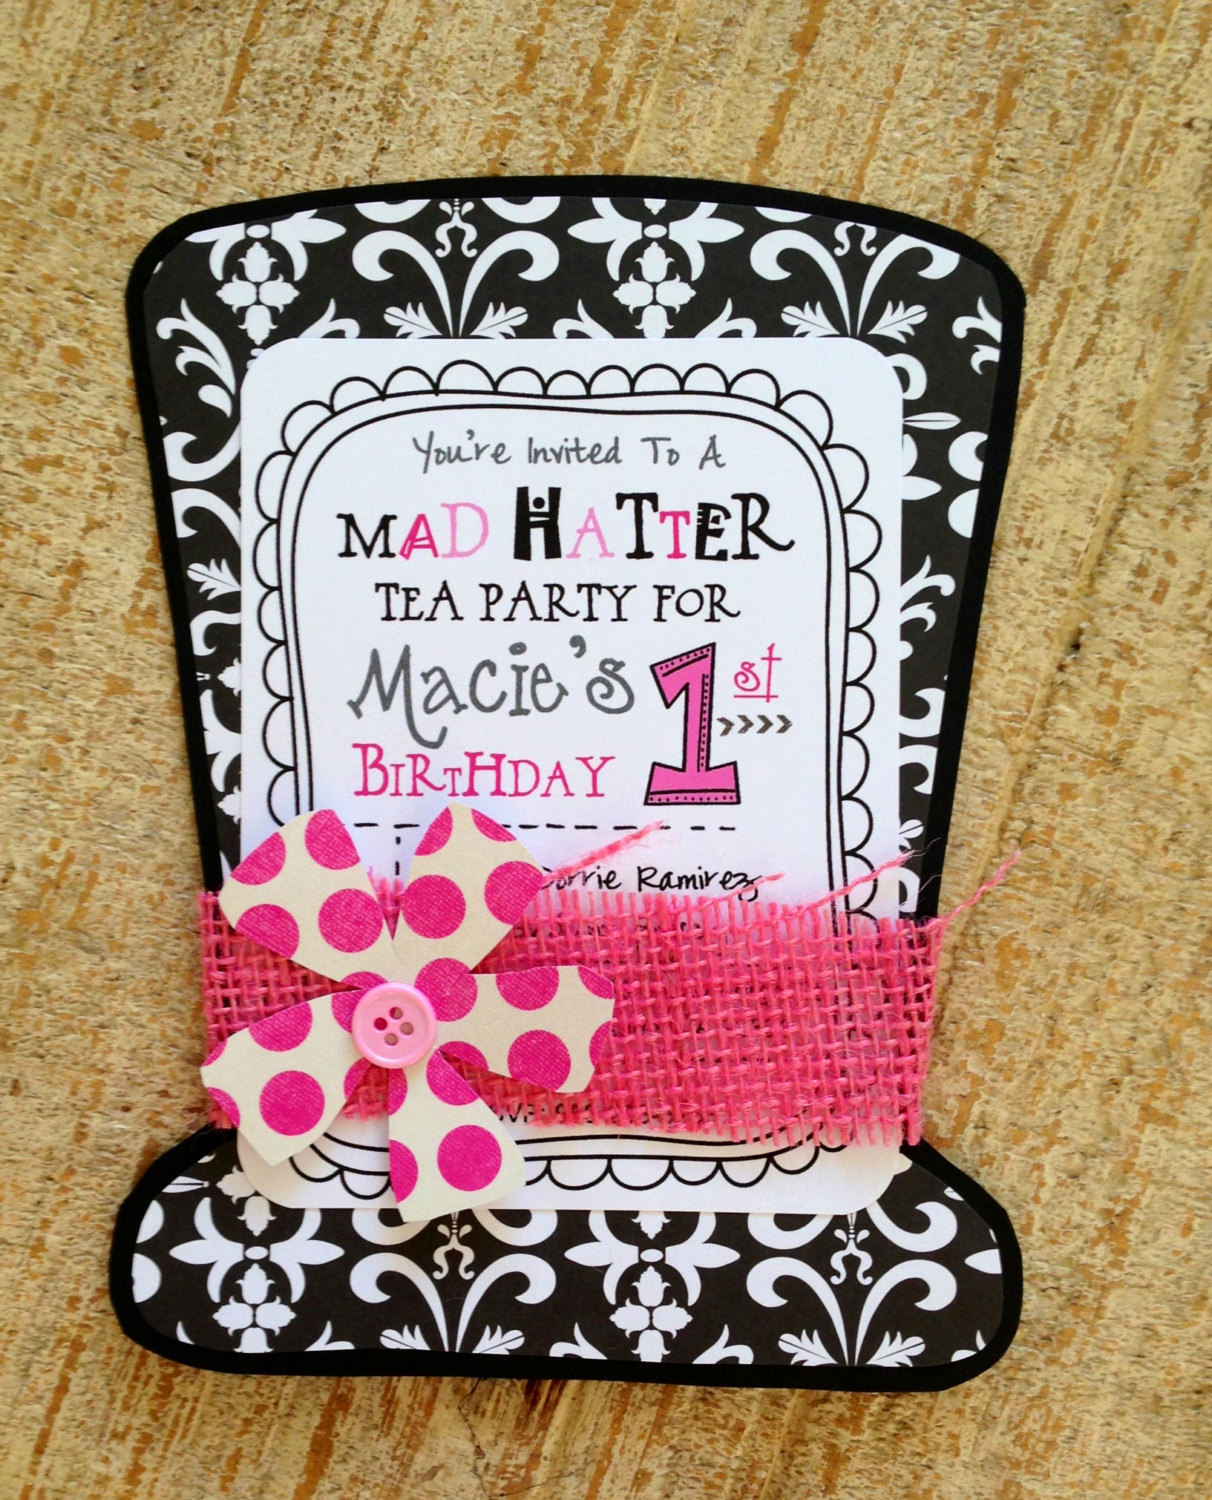 Mad Hatter Invitation Template Elegant Mad Hatter Tea Party Invitation by Jodigilbert2004 On Etsy